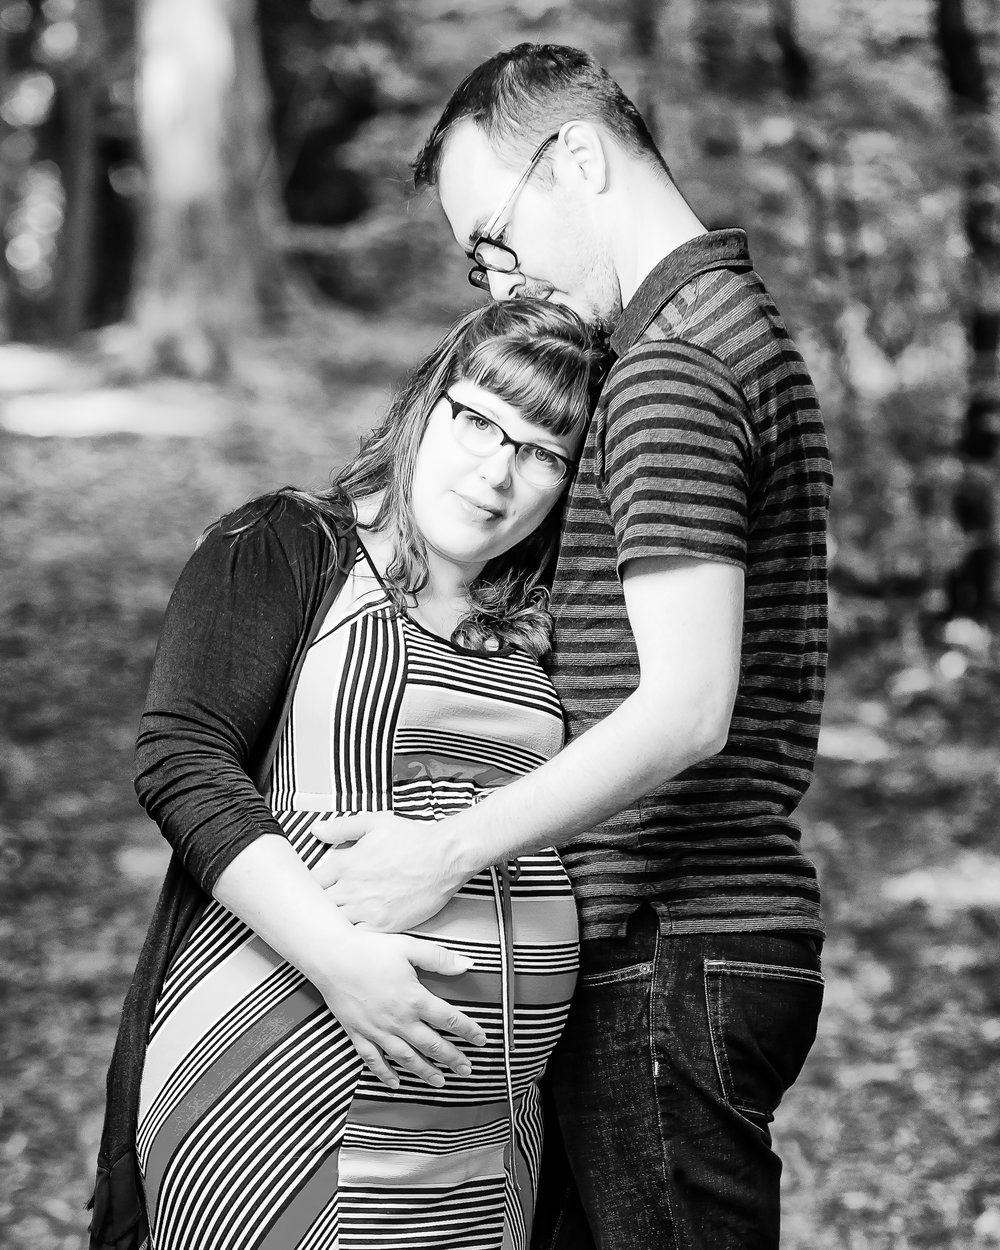 2018_June_23-06_23_2018_Ben_Anna_Maternity-48847-Edit-2-2.jpg